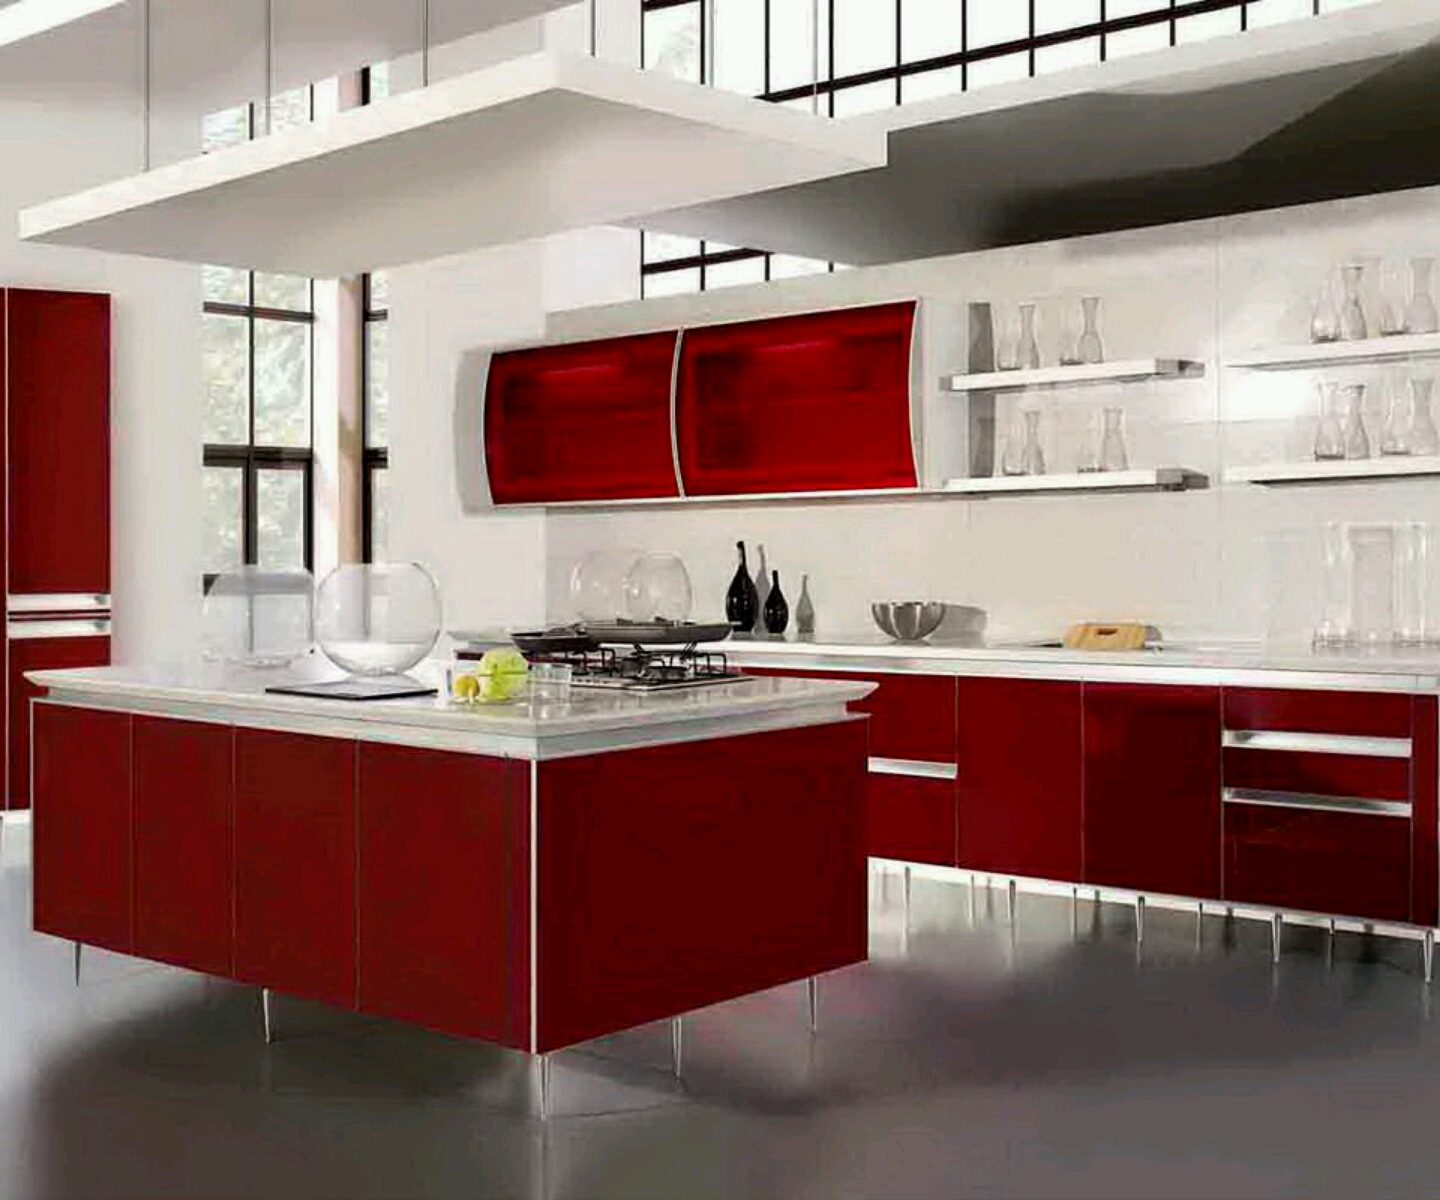 Latest Design For Kitchen: New Home Designs Latest.: Ultra Modern Kitchen Designs Ideas